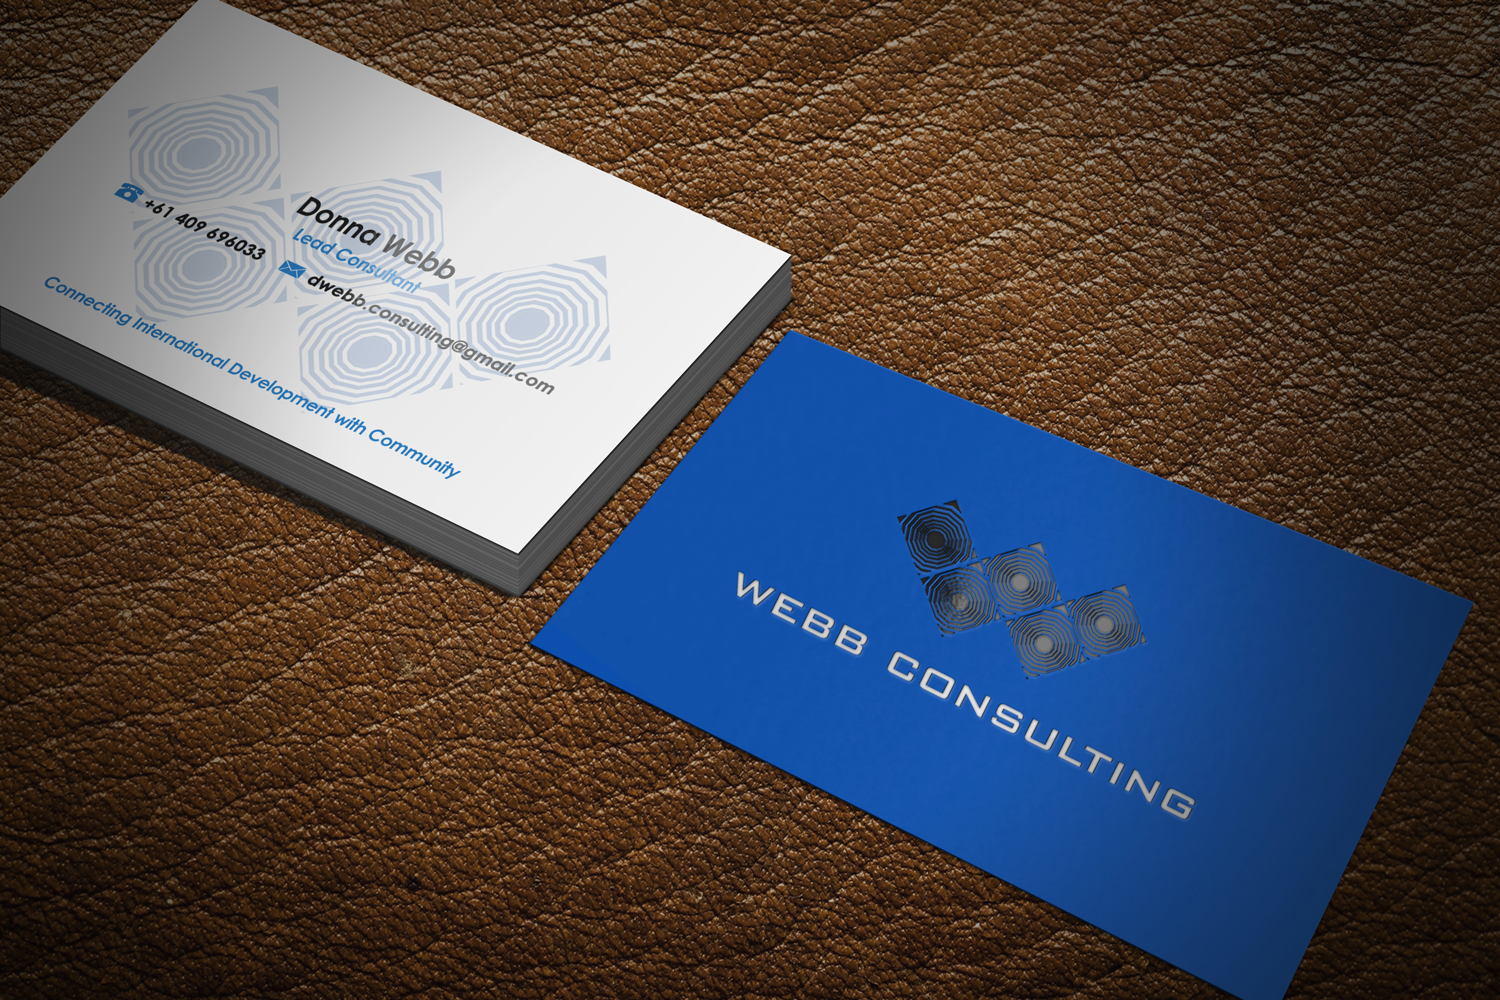 Personable, Modern Business Card Design for webb consulting by Riz ...